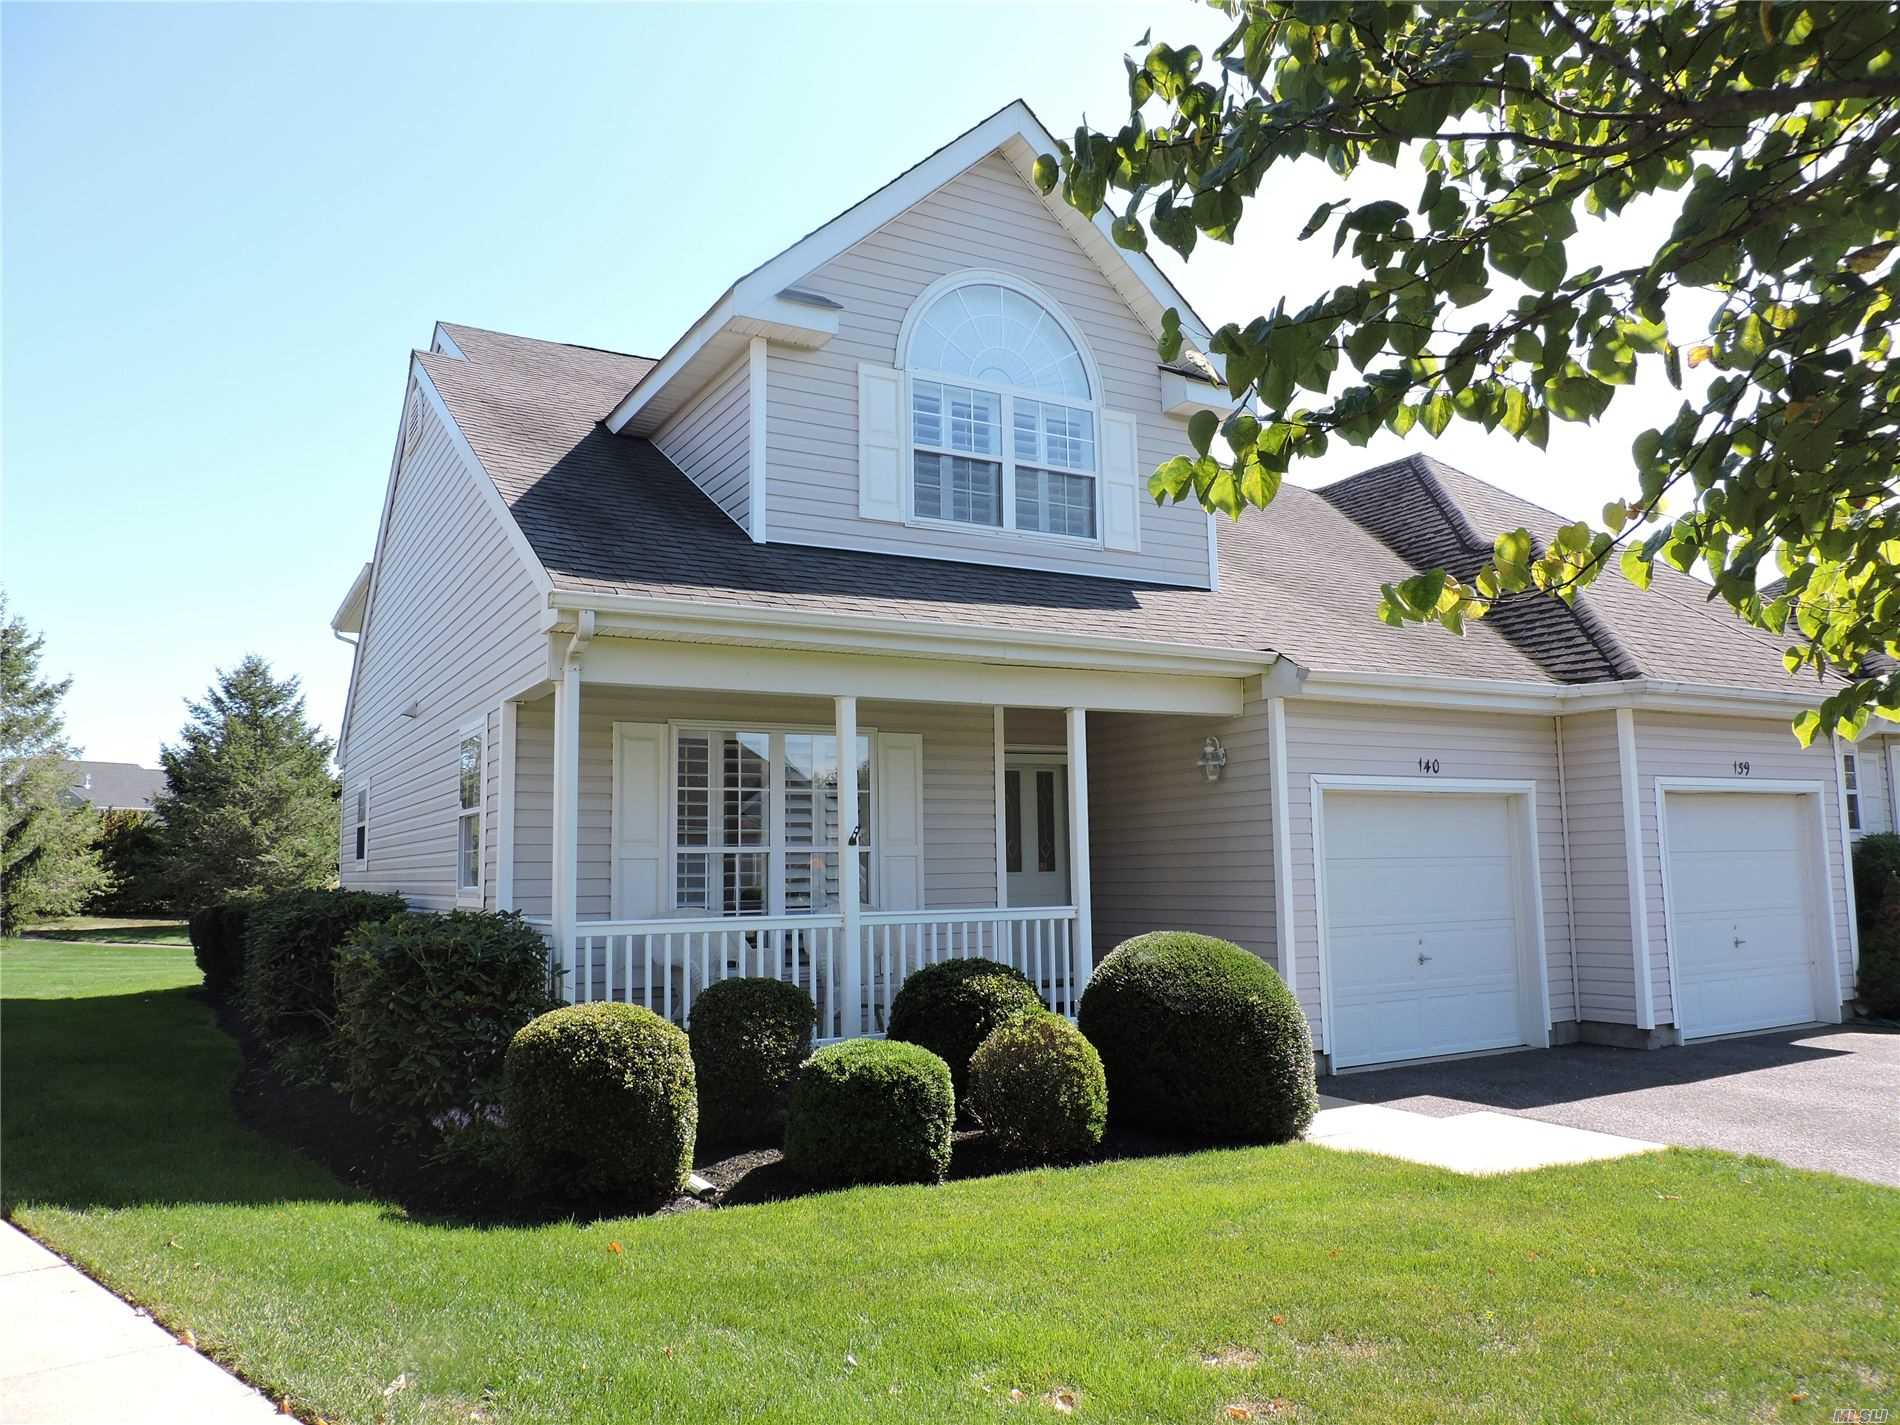 Property for sale at 140 Scenic Lake Drive, Riverhead NY 11901, Riverhead,  New York 11901